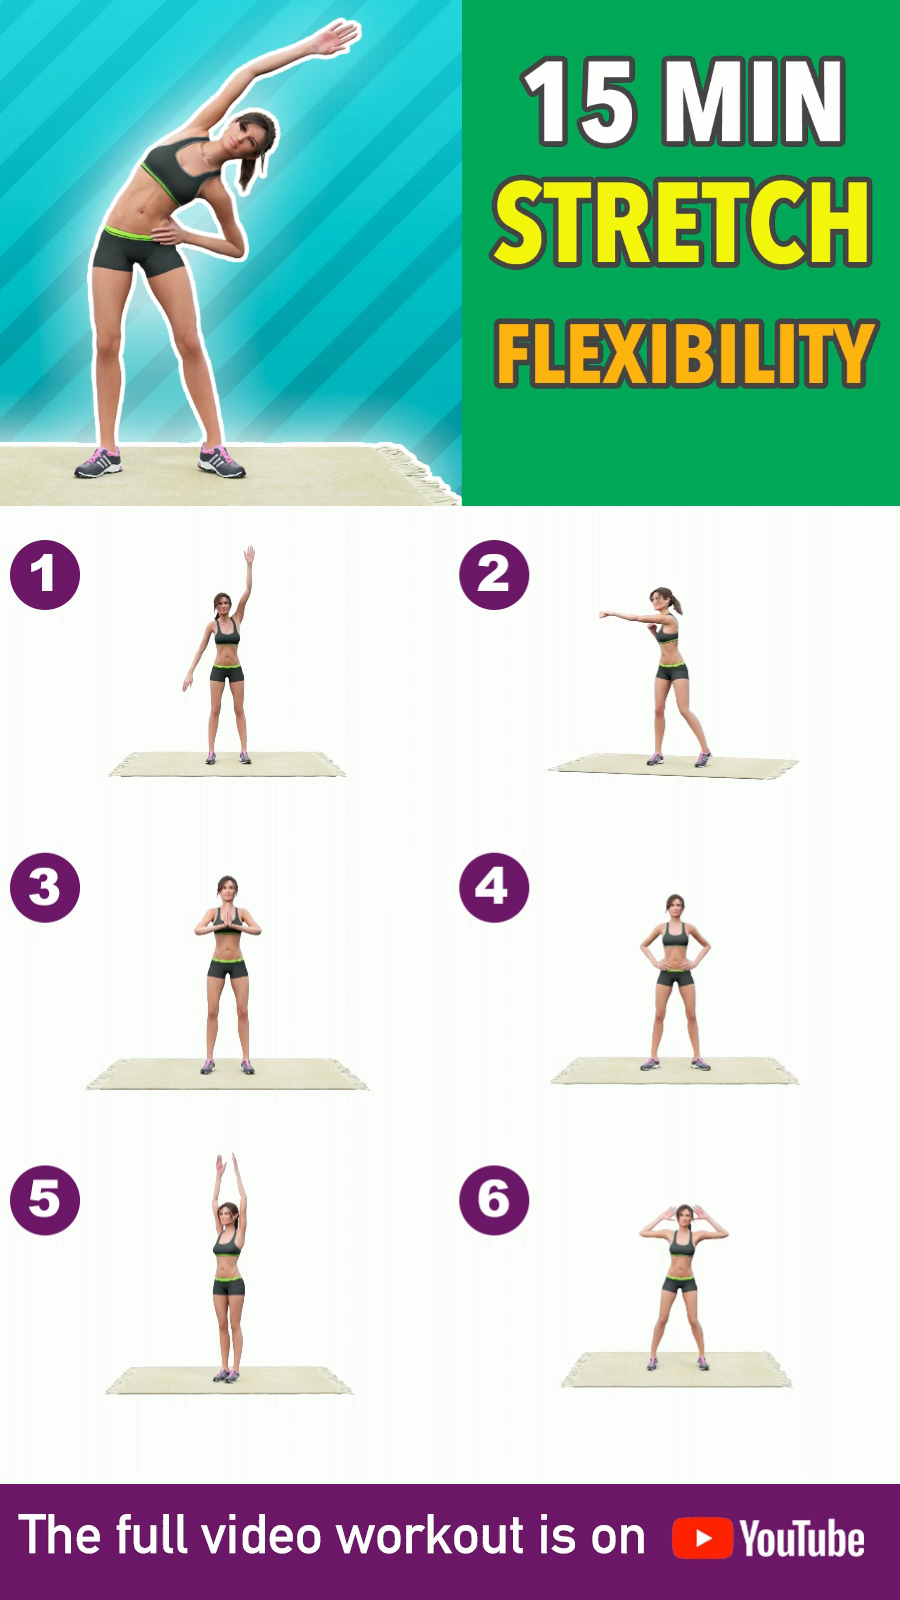 15 Min Stretching: Total Body Flexibility and Warm Up #15minworkout